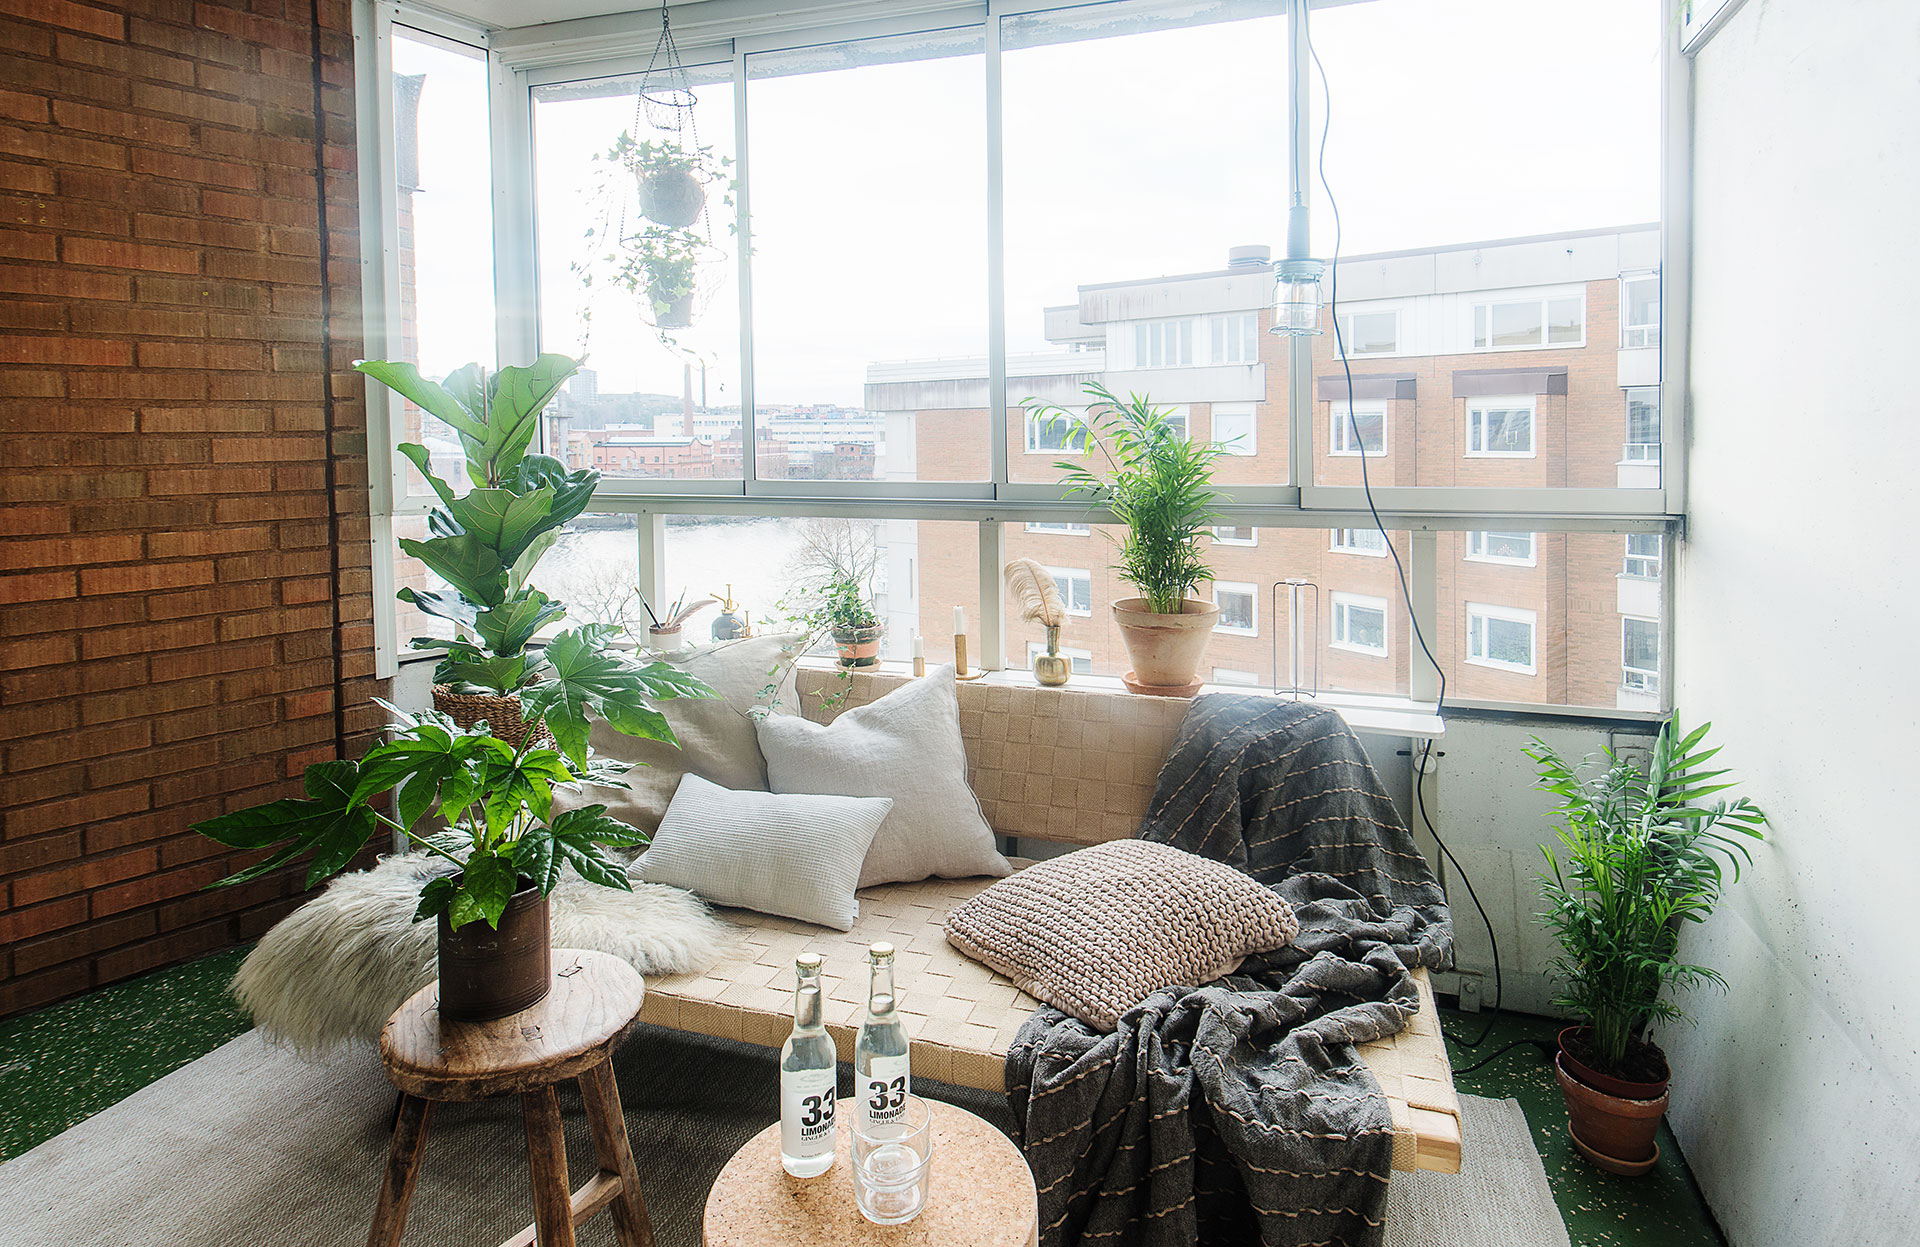 Balcon Avec Vue Planete Deco A Homes World Bloglovin